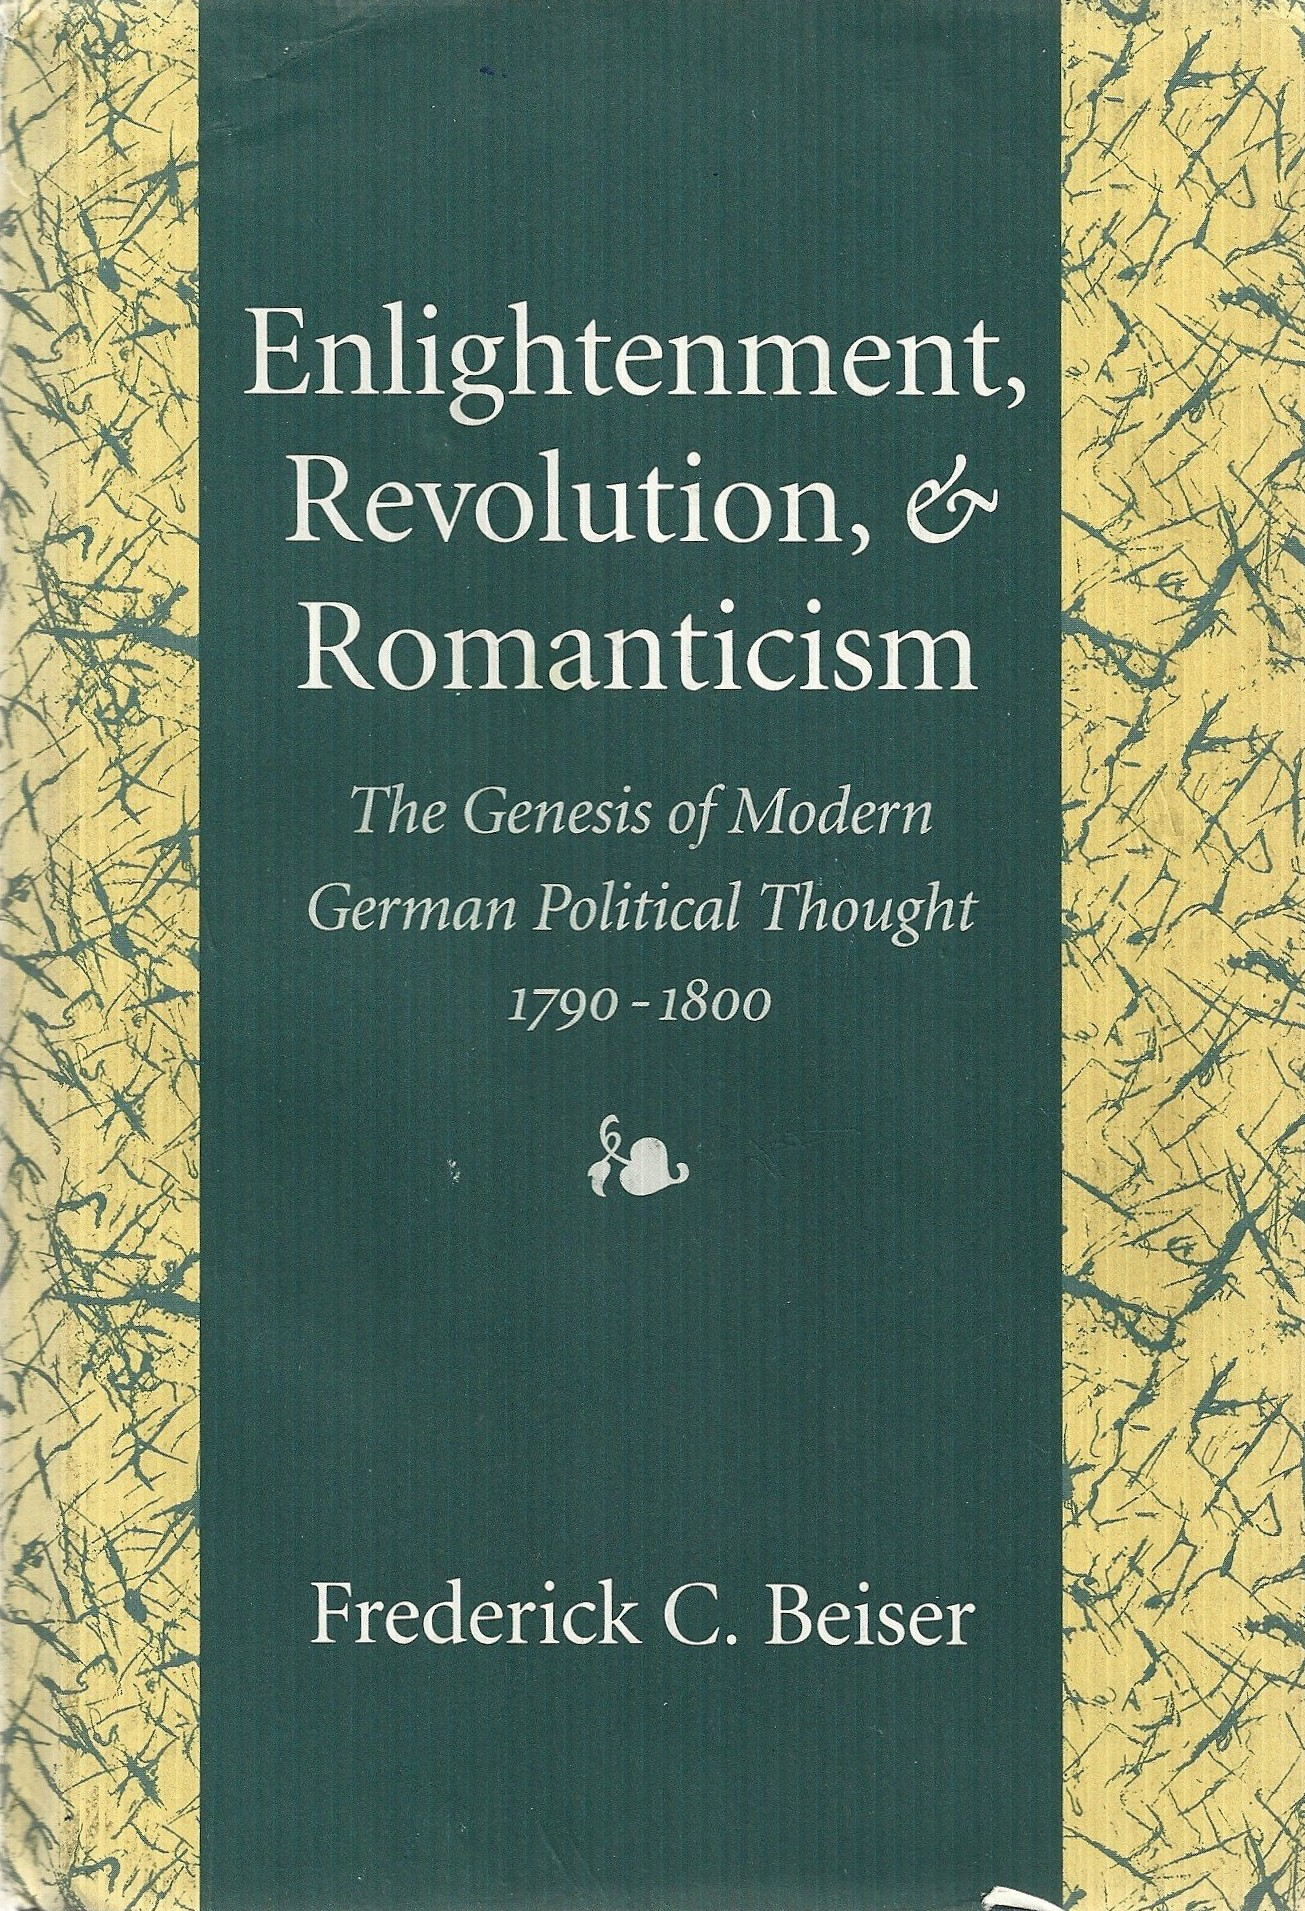 Enlightenment, Revolution, & Romanticism: The Genesis of Modern German Political Thought, 1790-1800 by Frederick C. Beiser free download